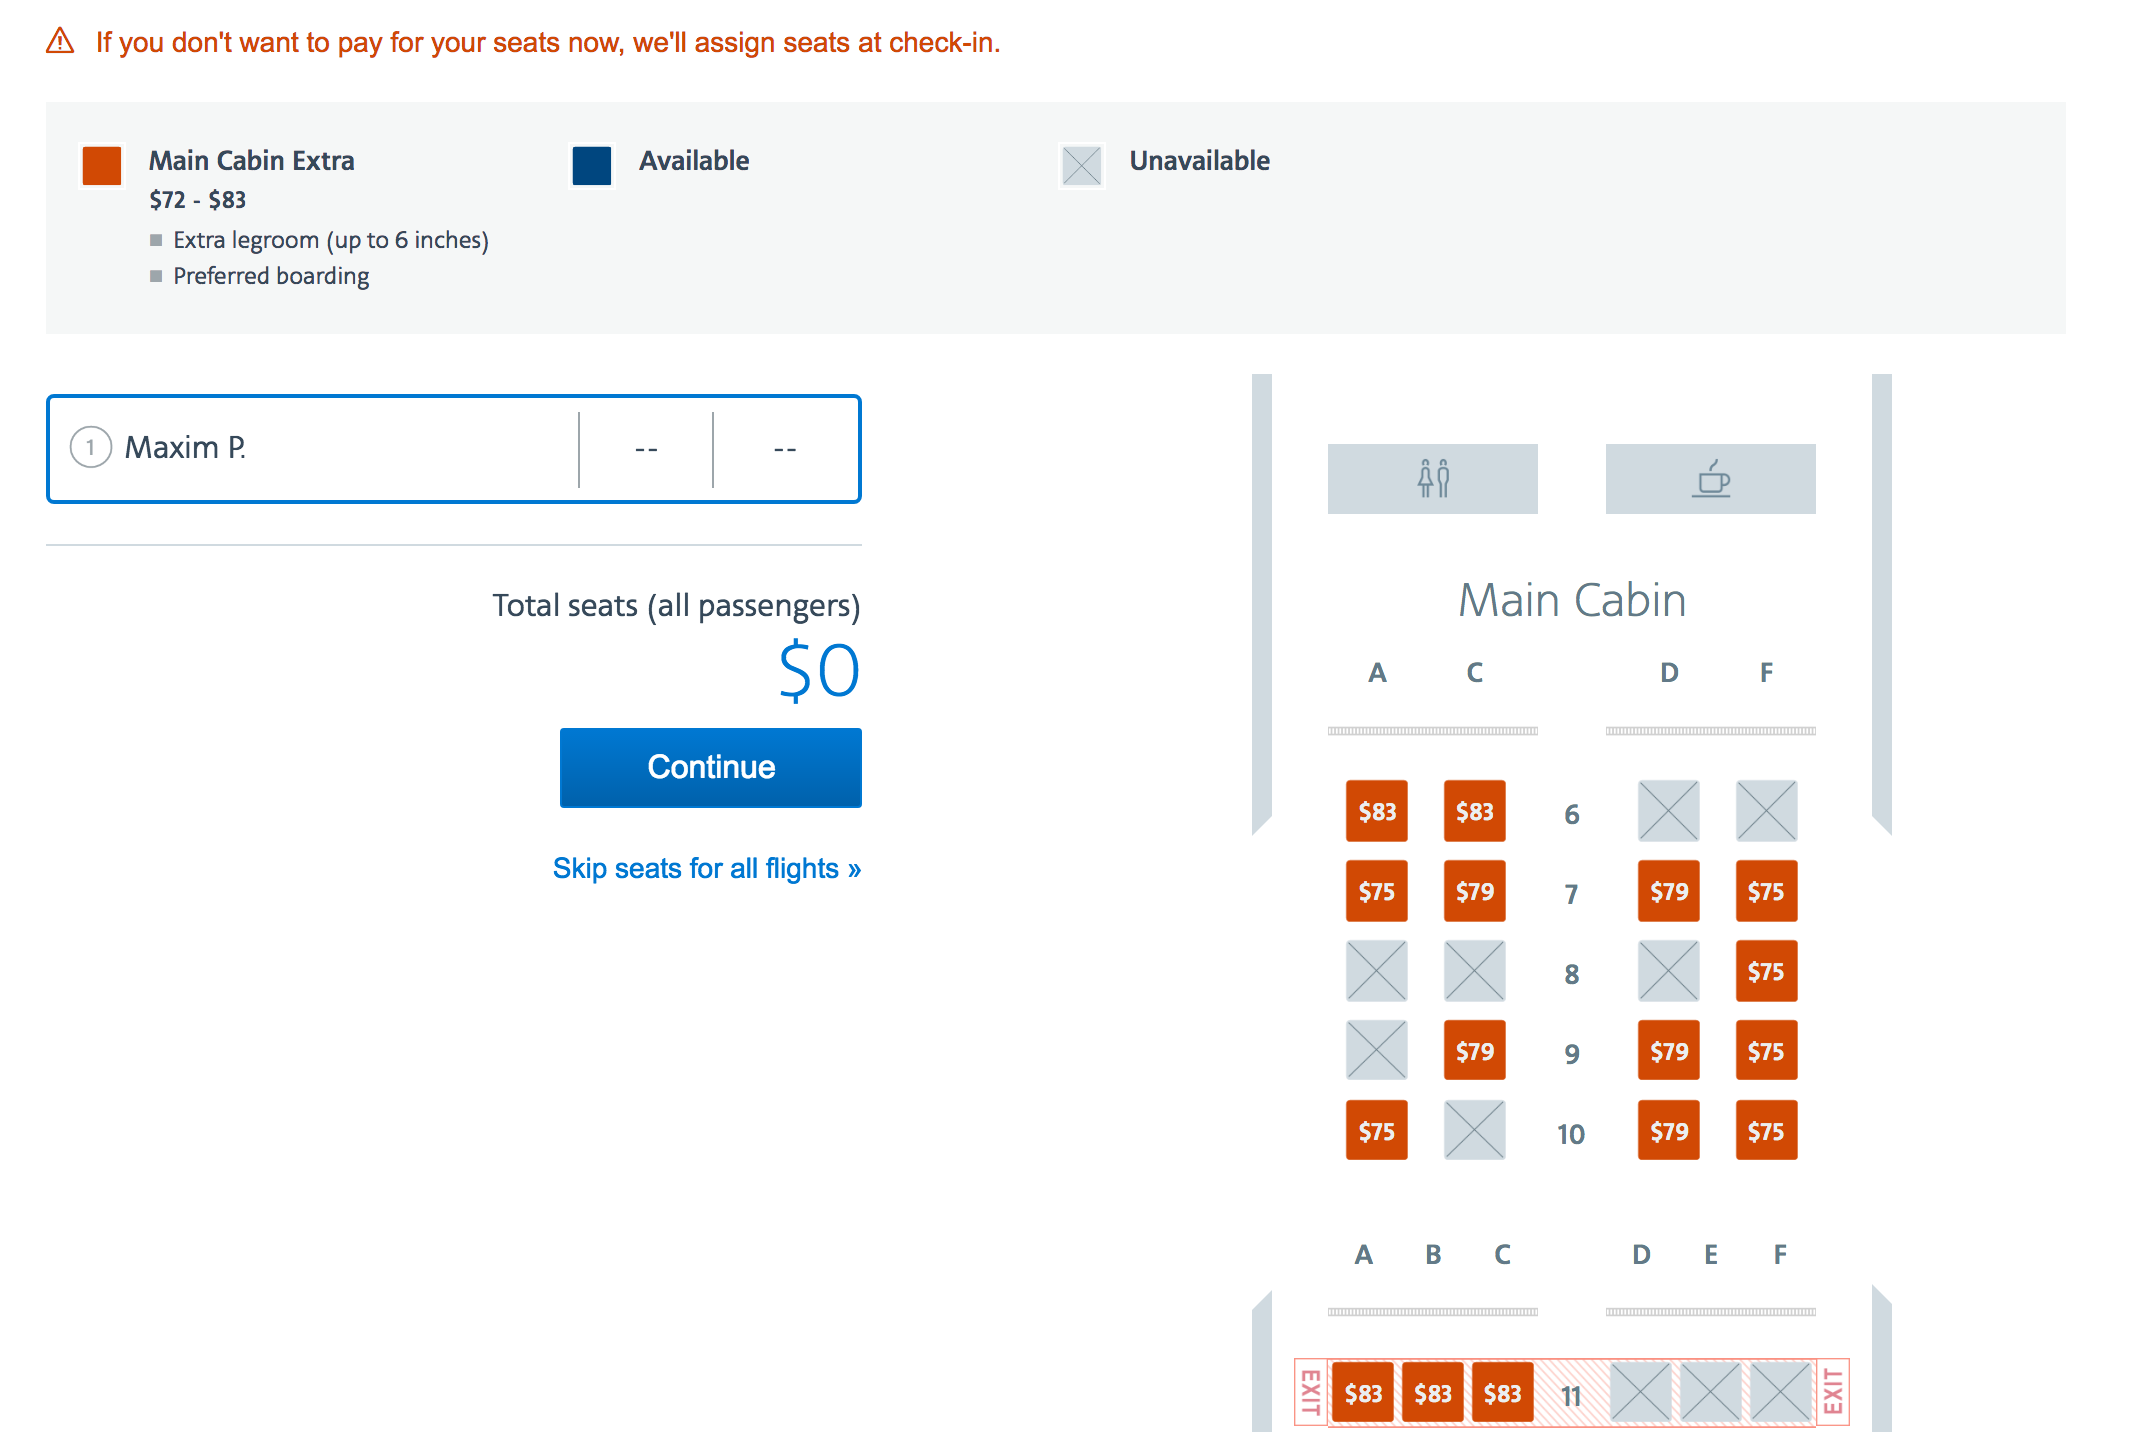 Business Class is Being Sold as Main Cabin Extra